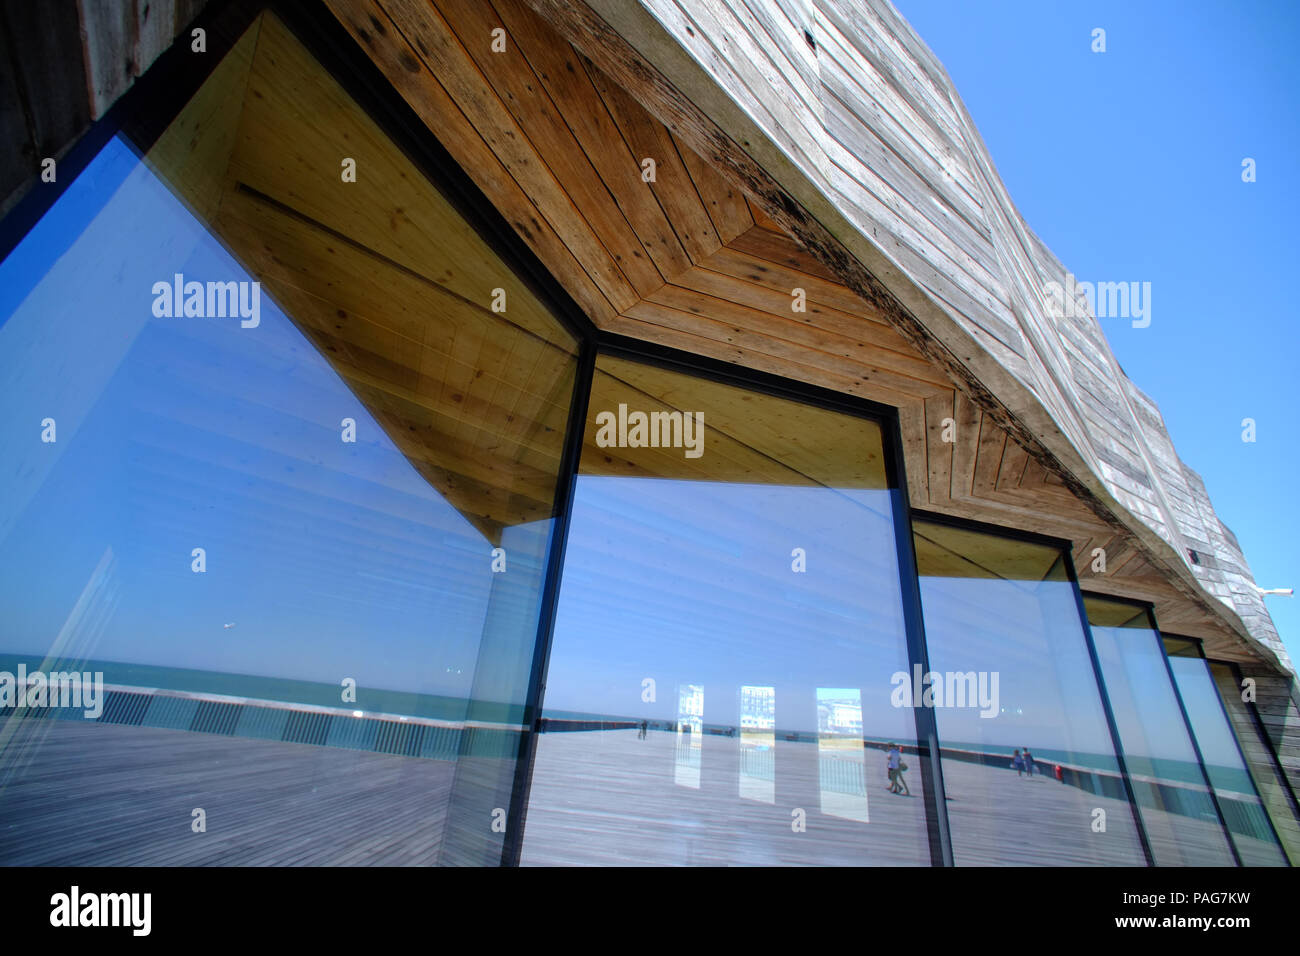 Hastings Pier. Award winning and newly renovated pier - Stock Image